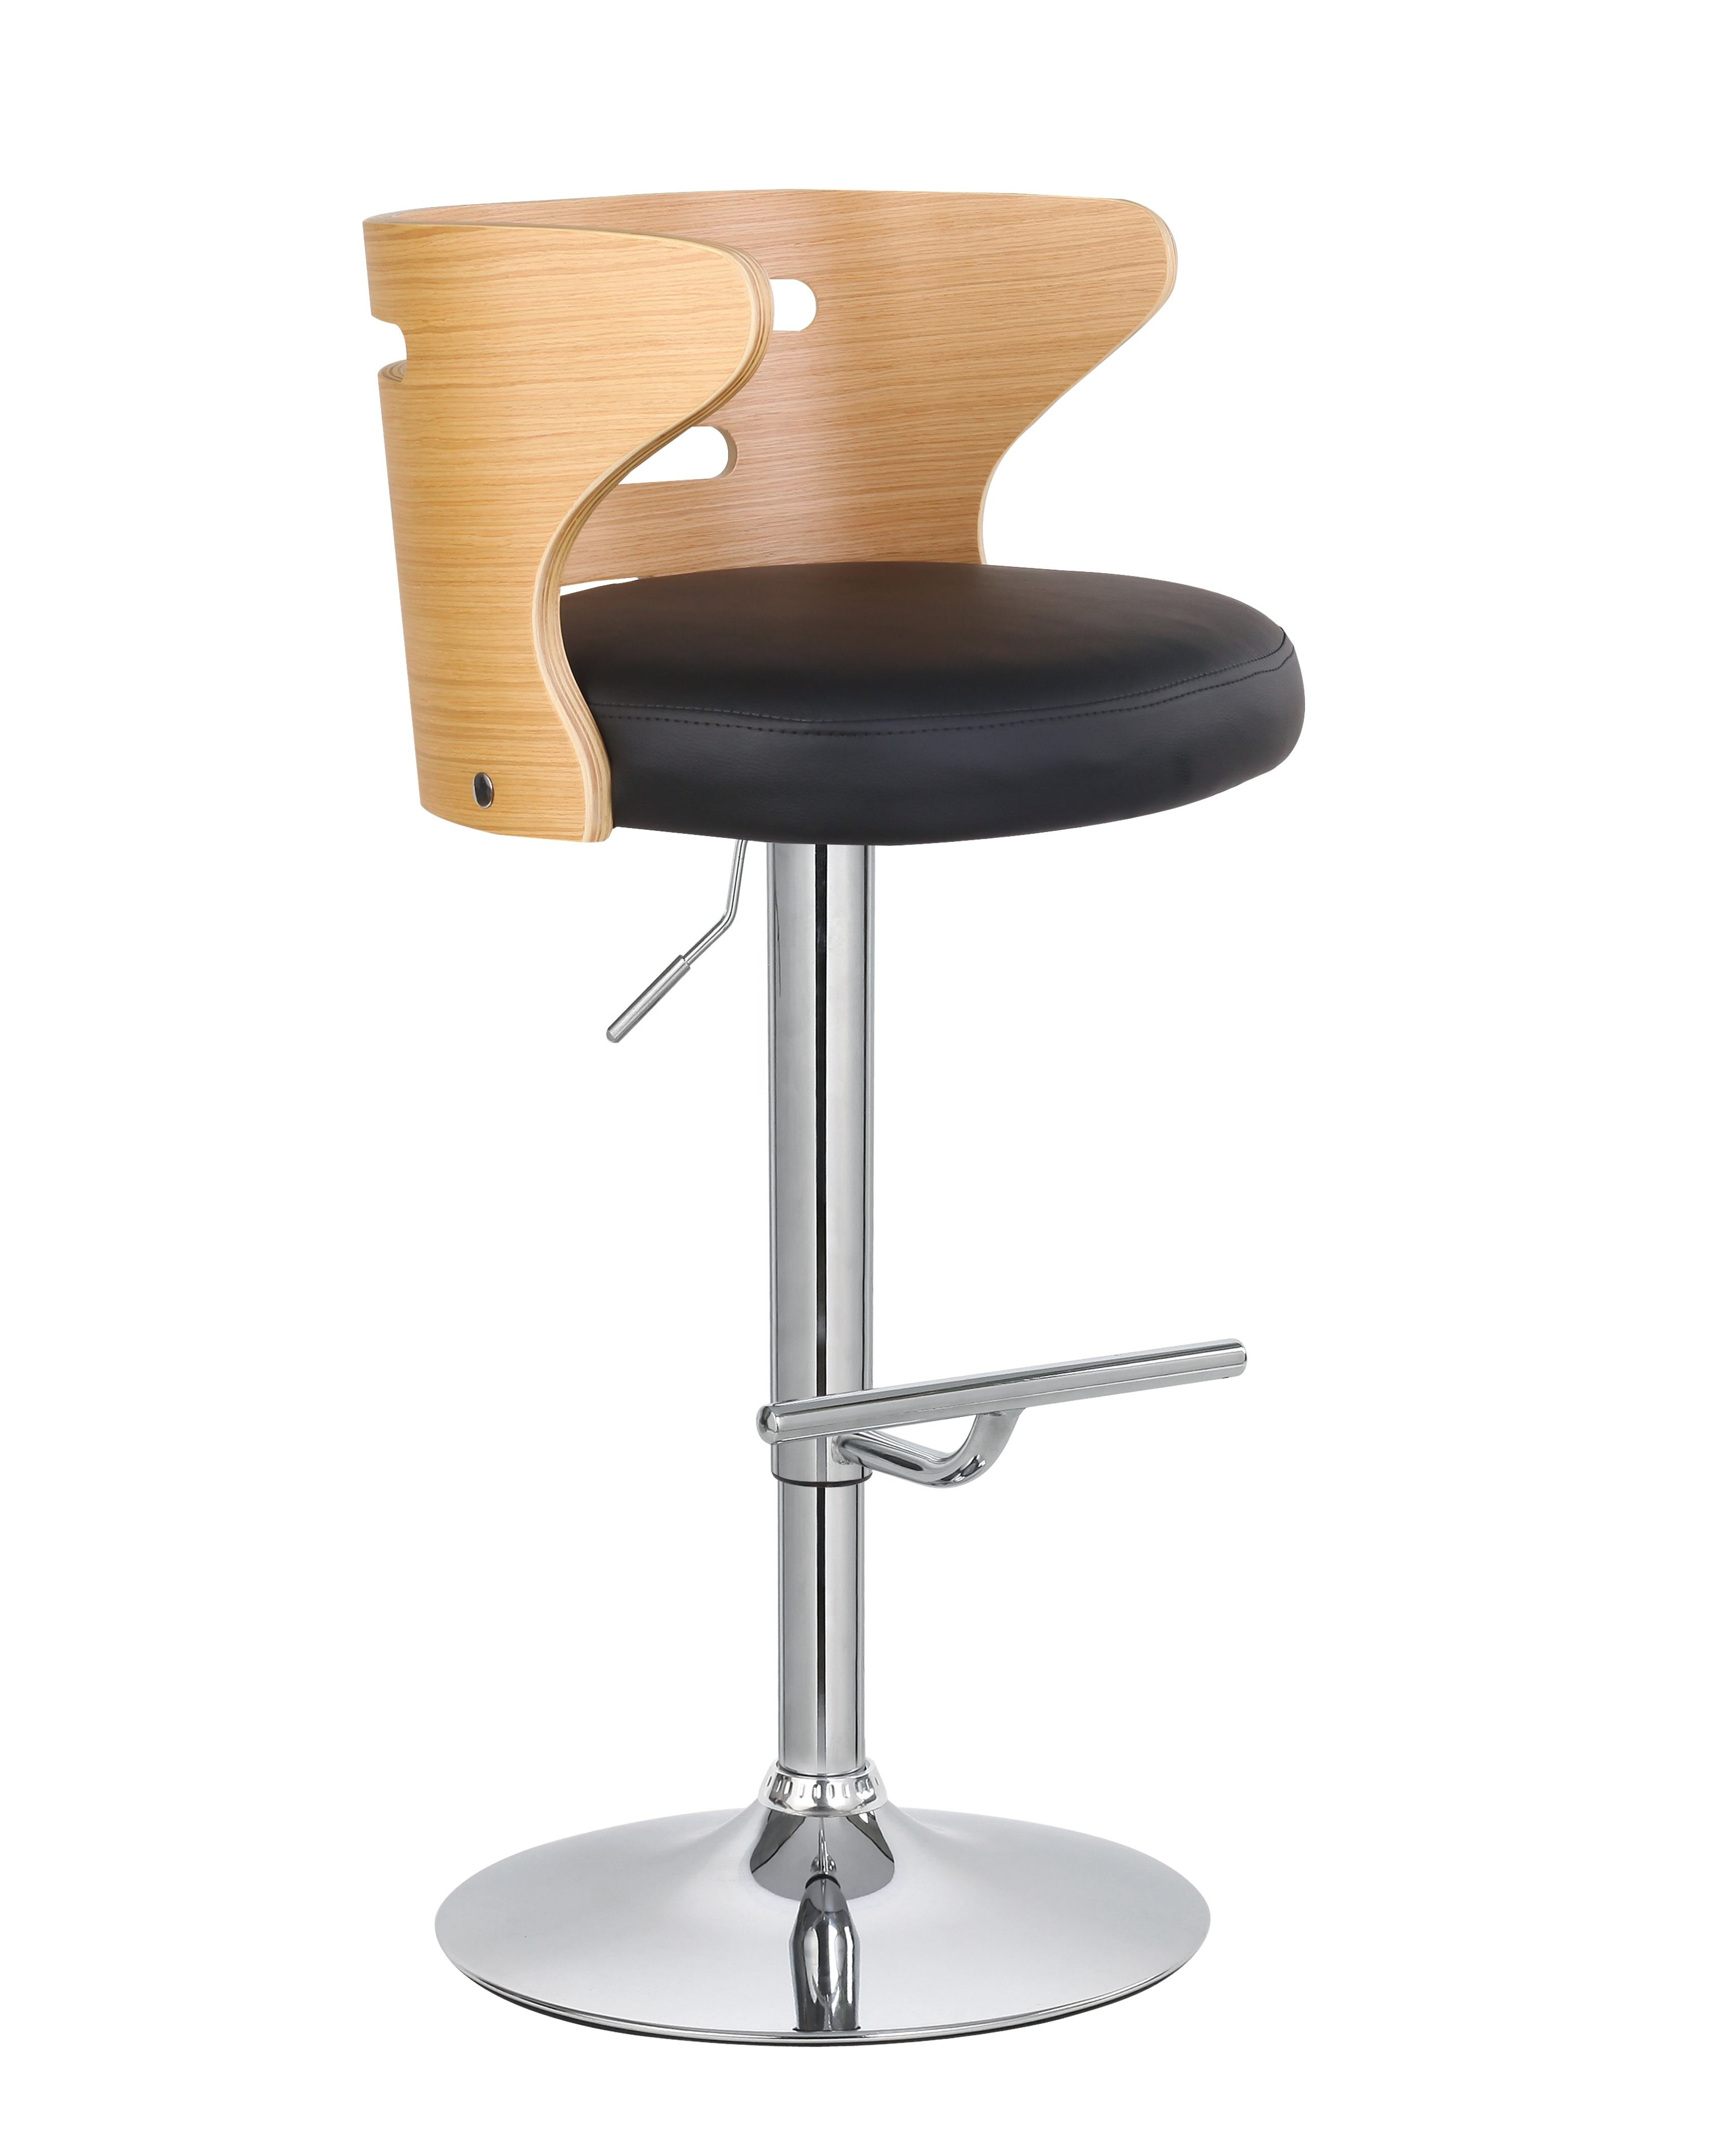 China Gas Bar Stool China Gas Bar Stool Manufacturers And Suppliers On Alibaba Com